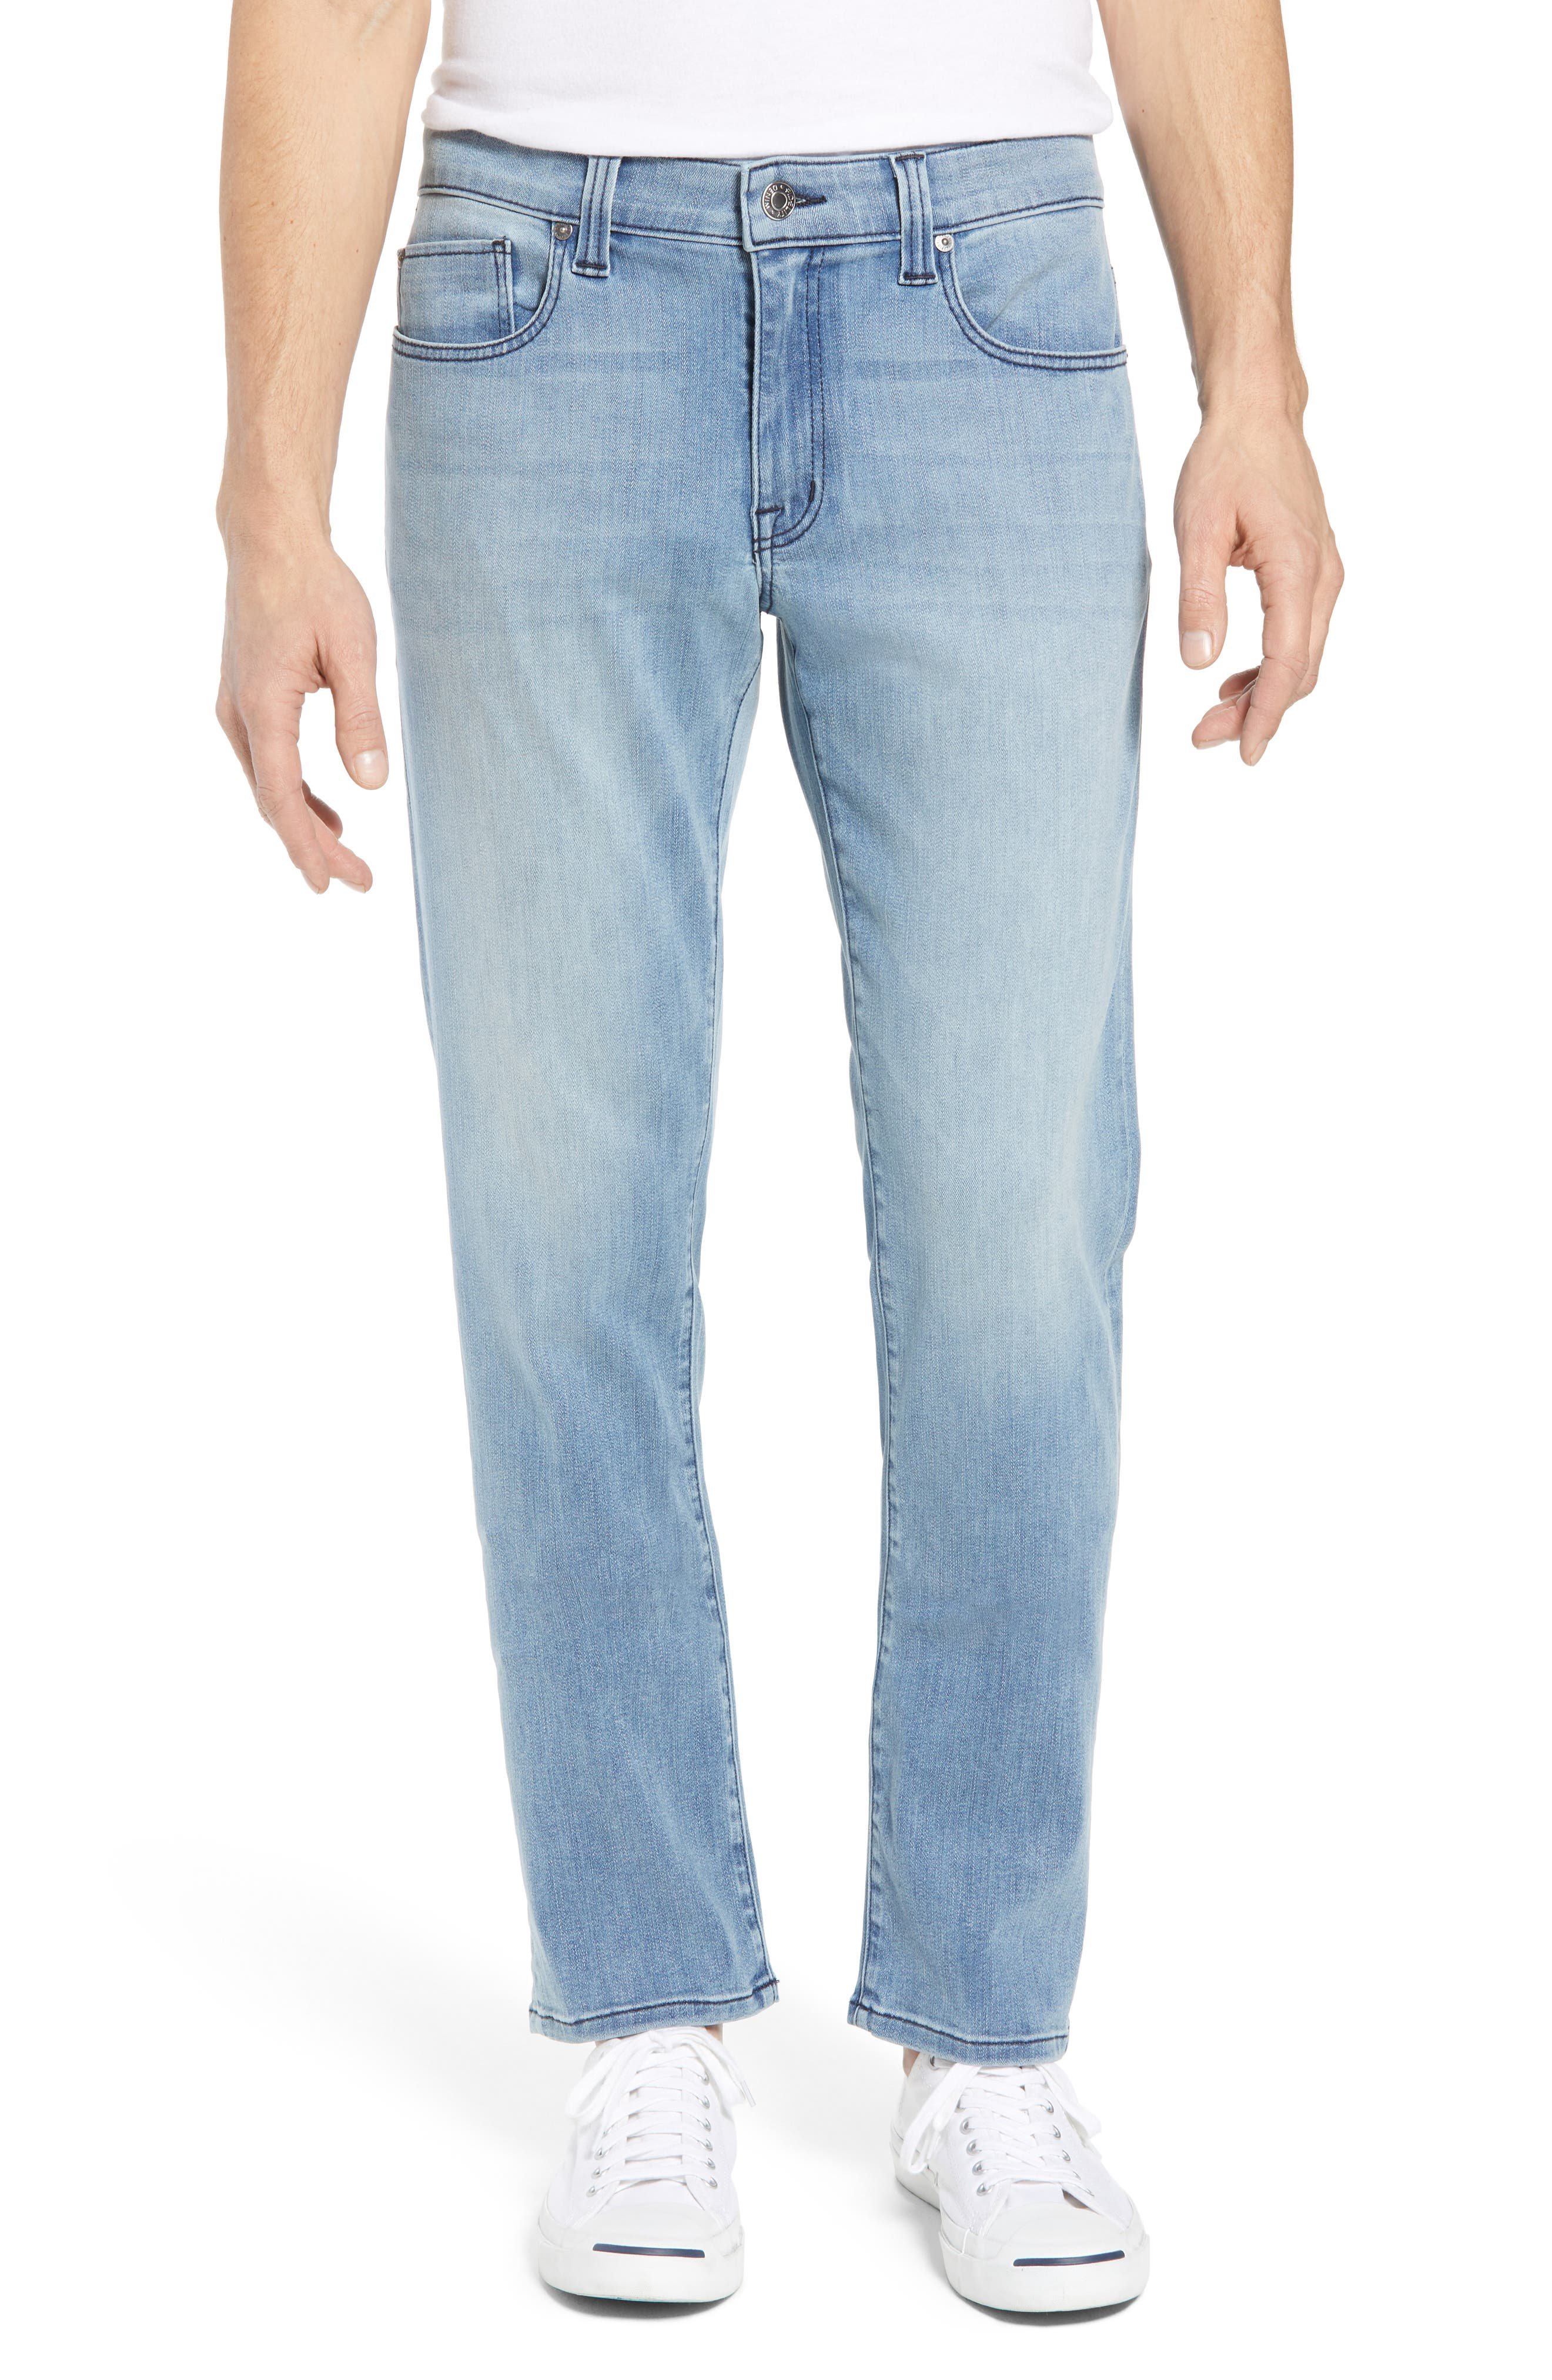 Jimmy Slim Straight Leg Jeans,                             Main thumbnail 1, color,